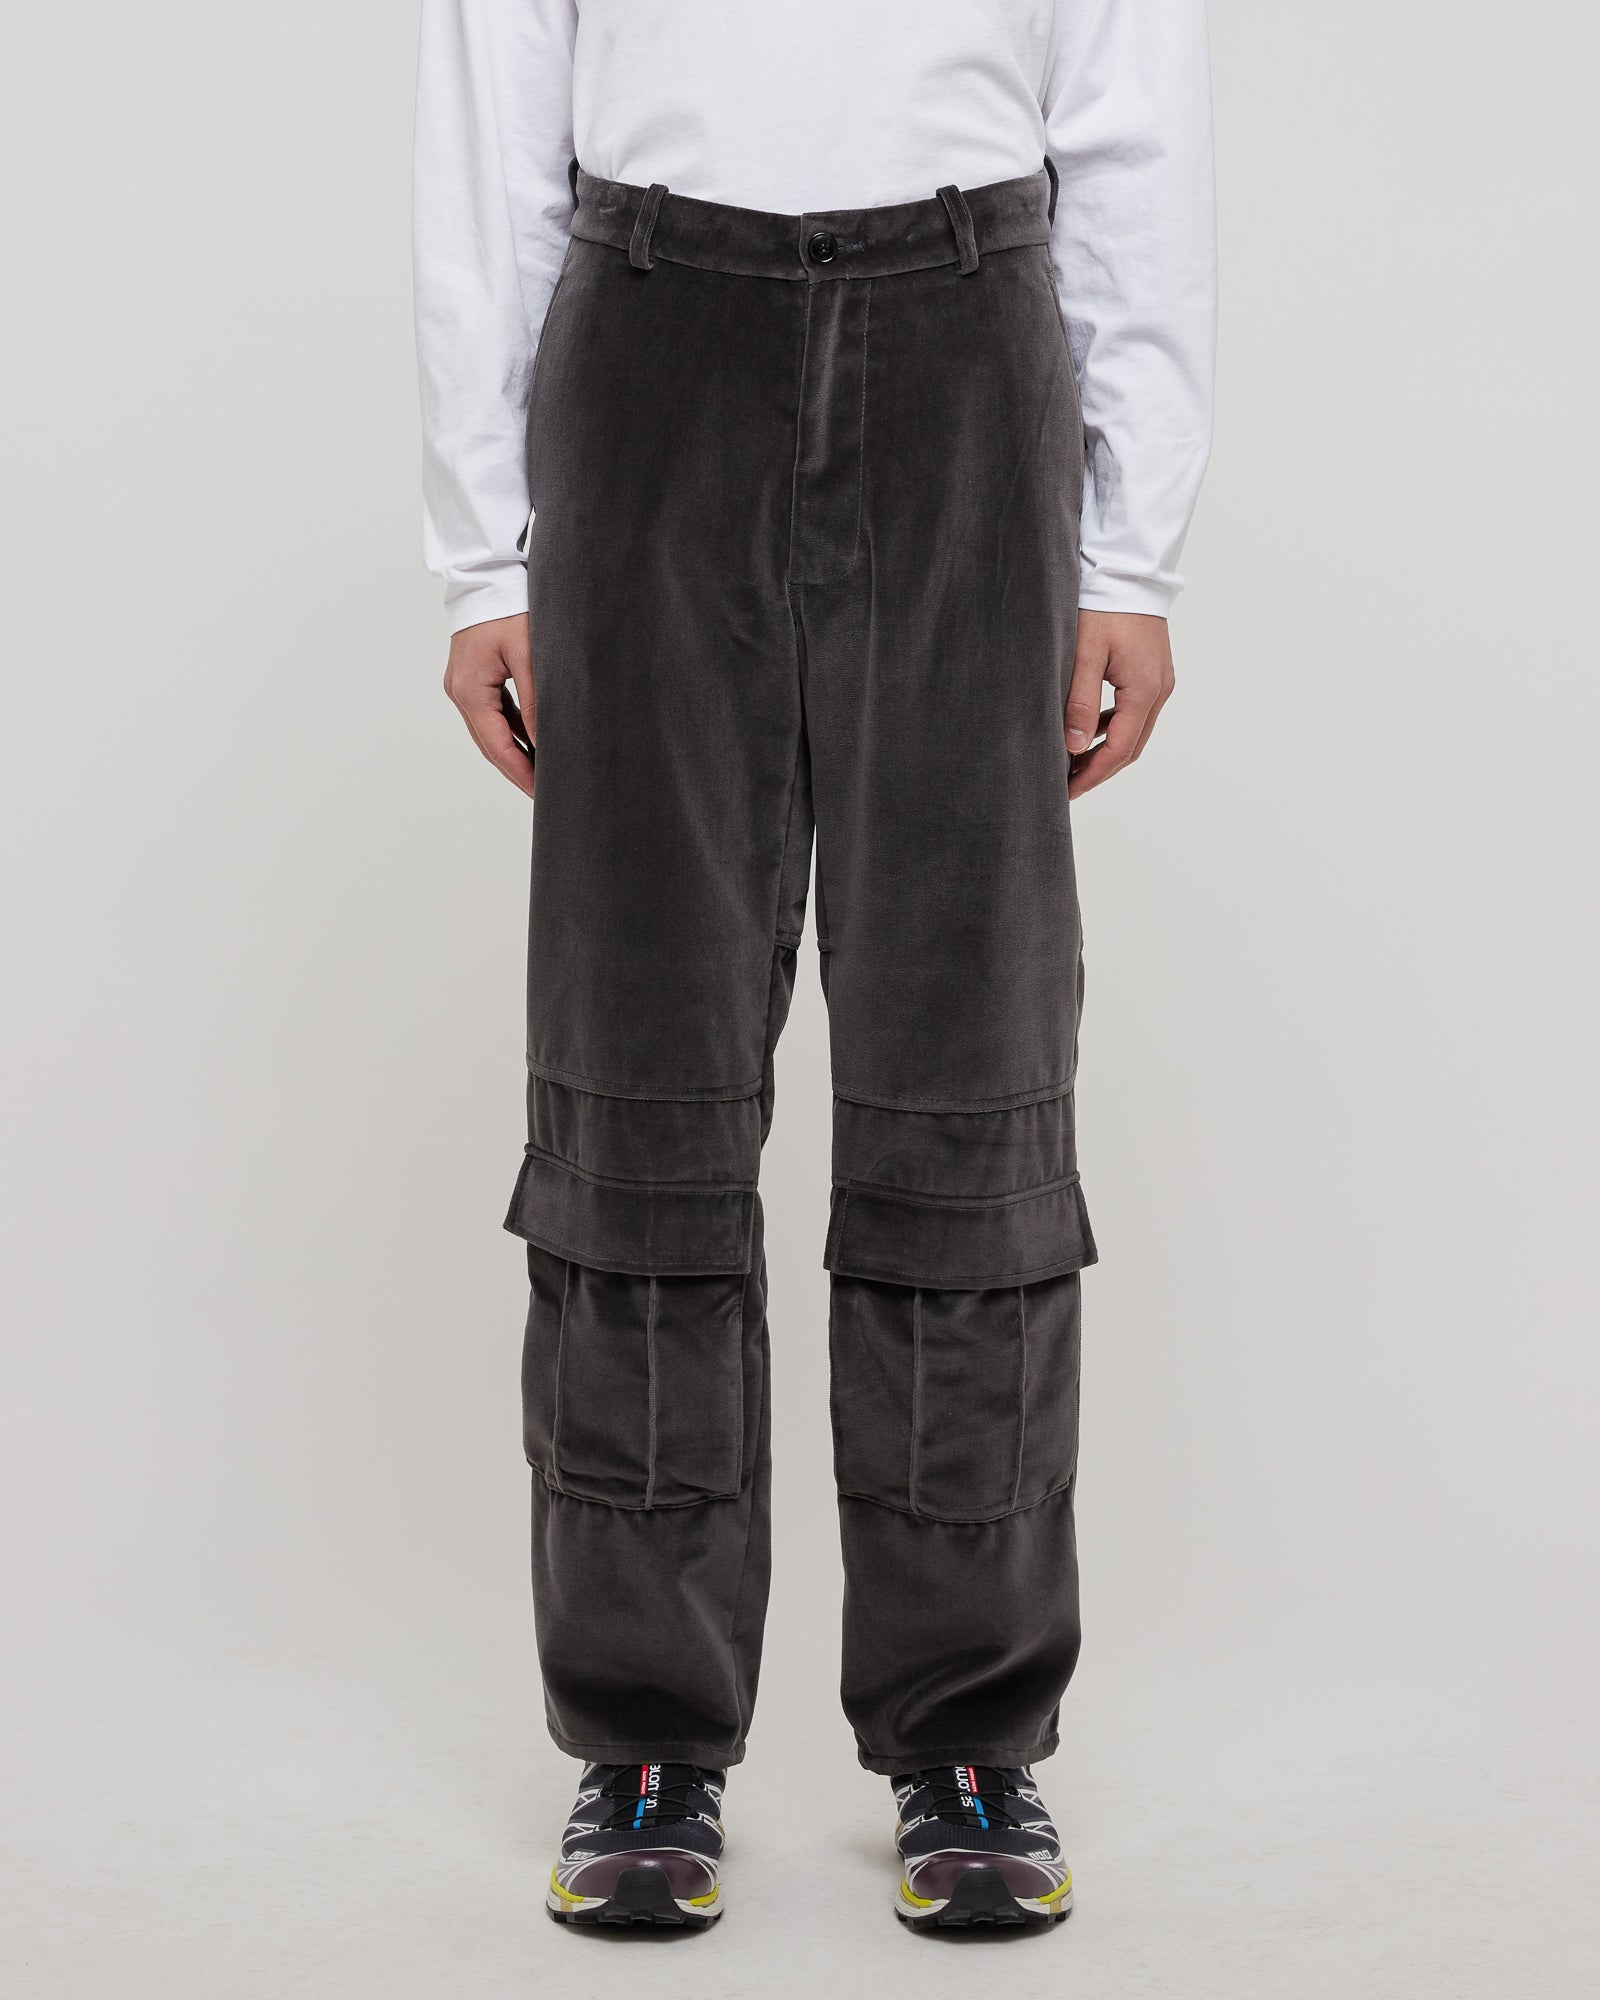 Cook Trousers in Velvet Gray